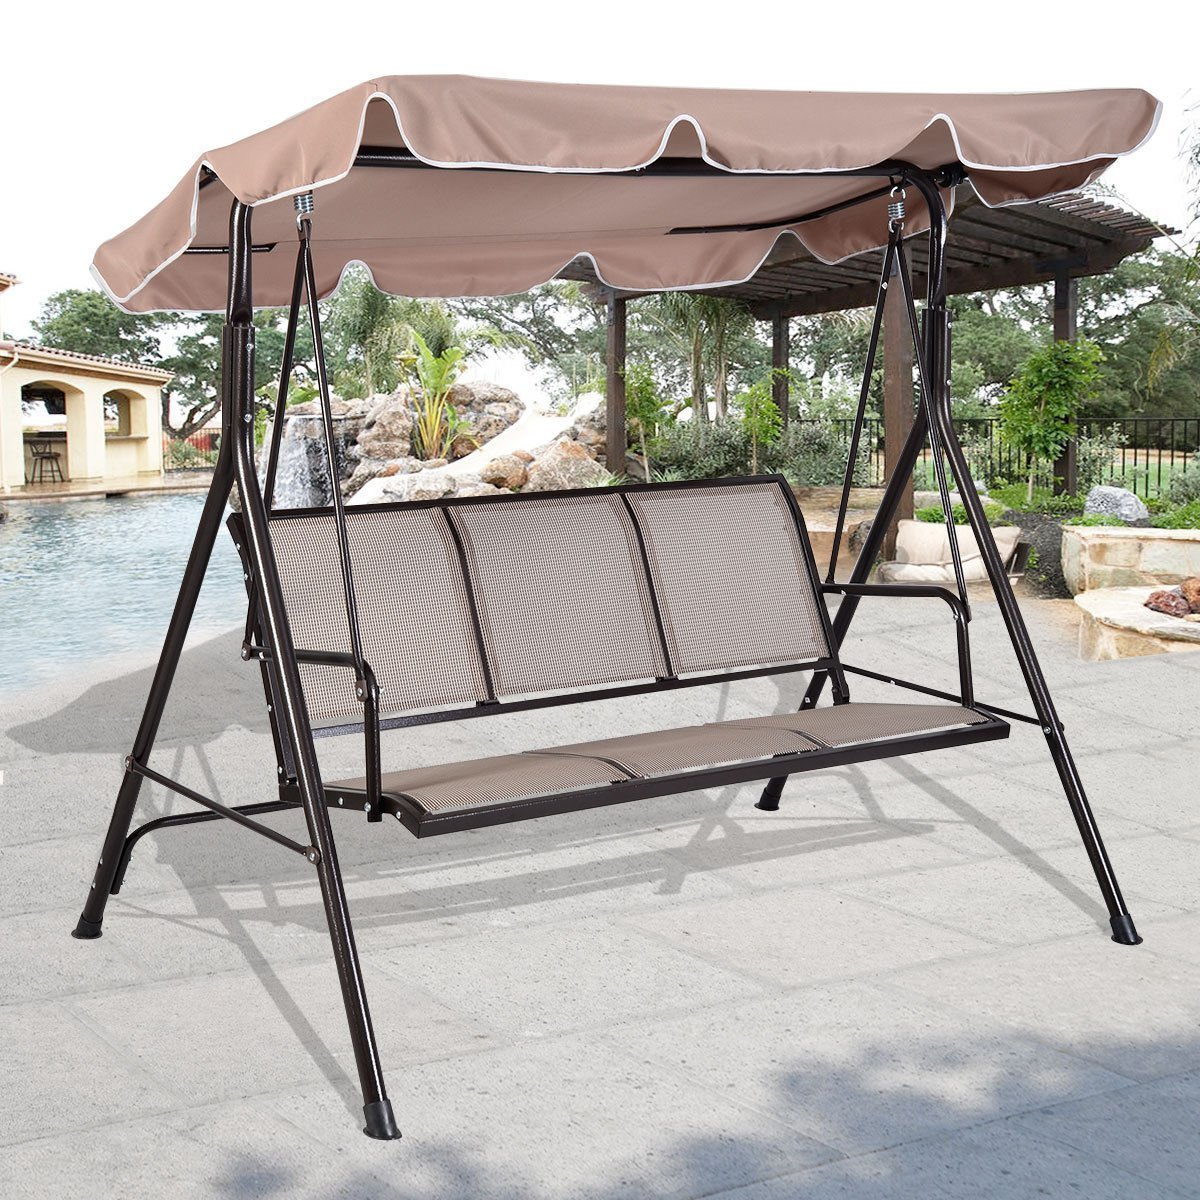 Amazon.com  Giantex 3 Person Outdoor Patio Swing Canopy Awning Yard Furniture Hammock Steel Beige  Garden u0026 Outdoor & Amazon.com : Giantex 3 Person Outdoor Patio Swing Canopy Awning ...